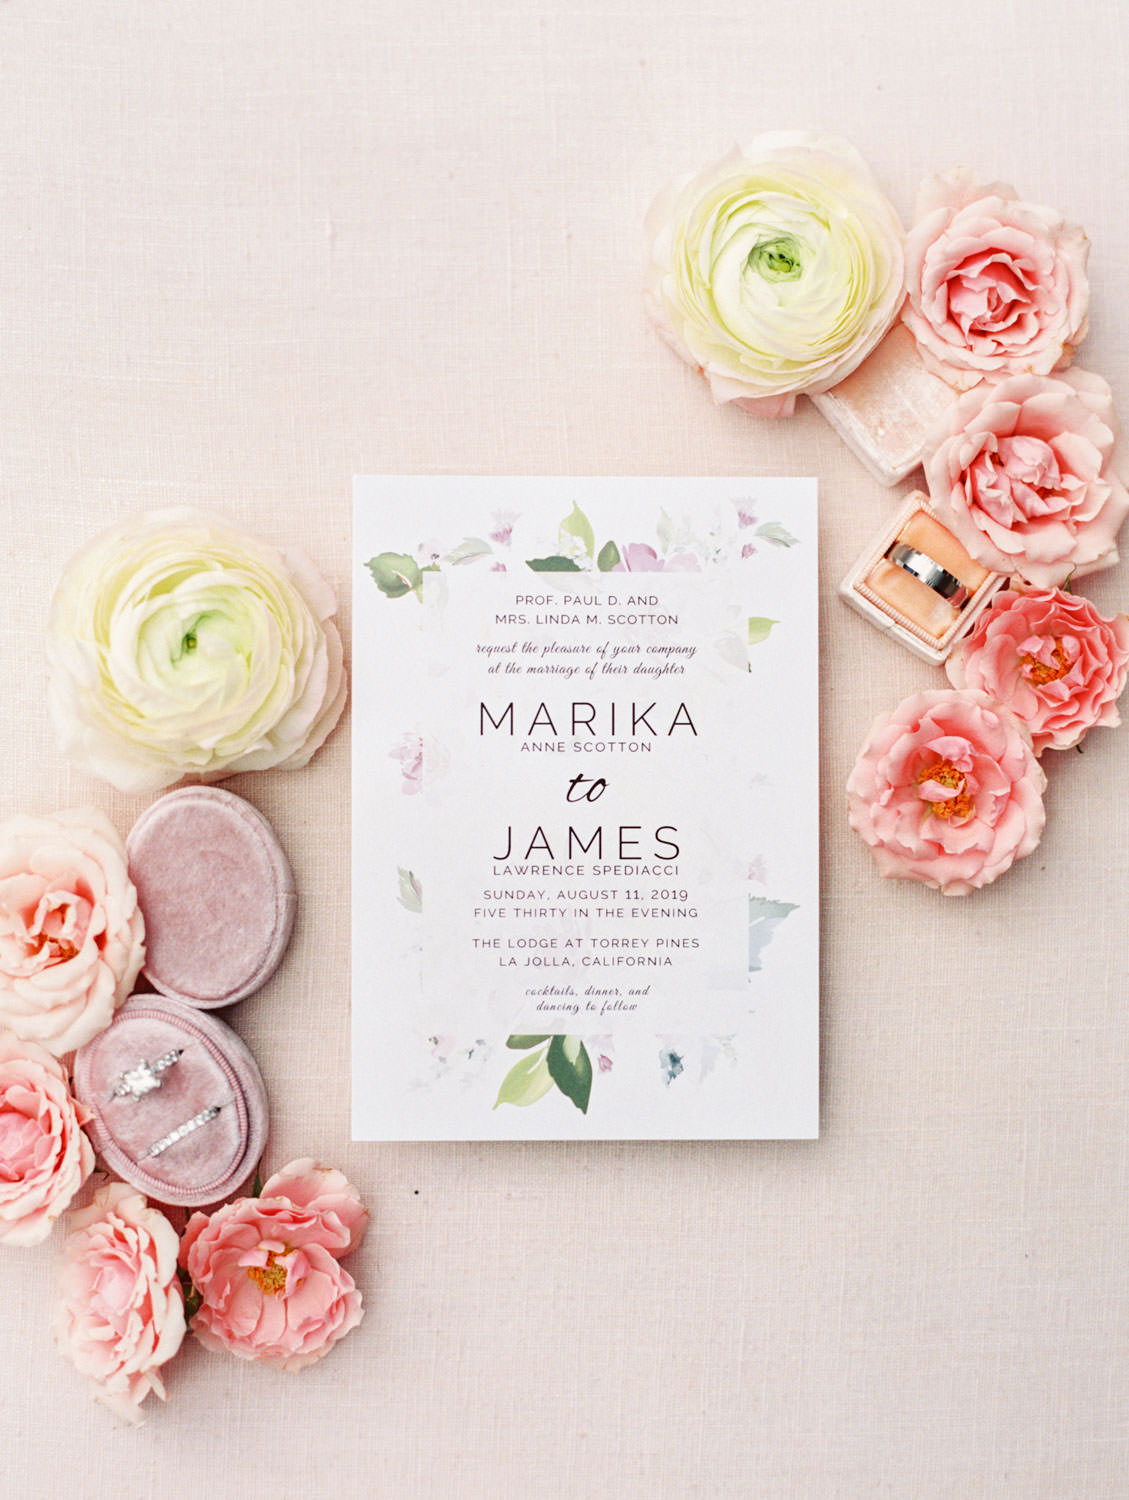 White wedding invitation with green and lavender floral border styled with wedding rings and flowers, film photography by Cavin Elizabeth Photography